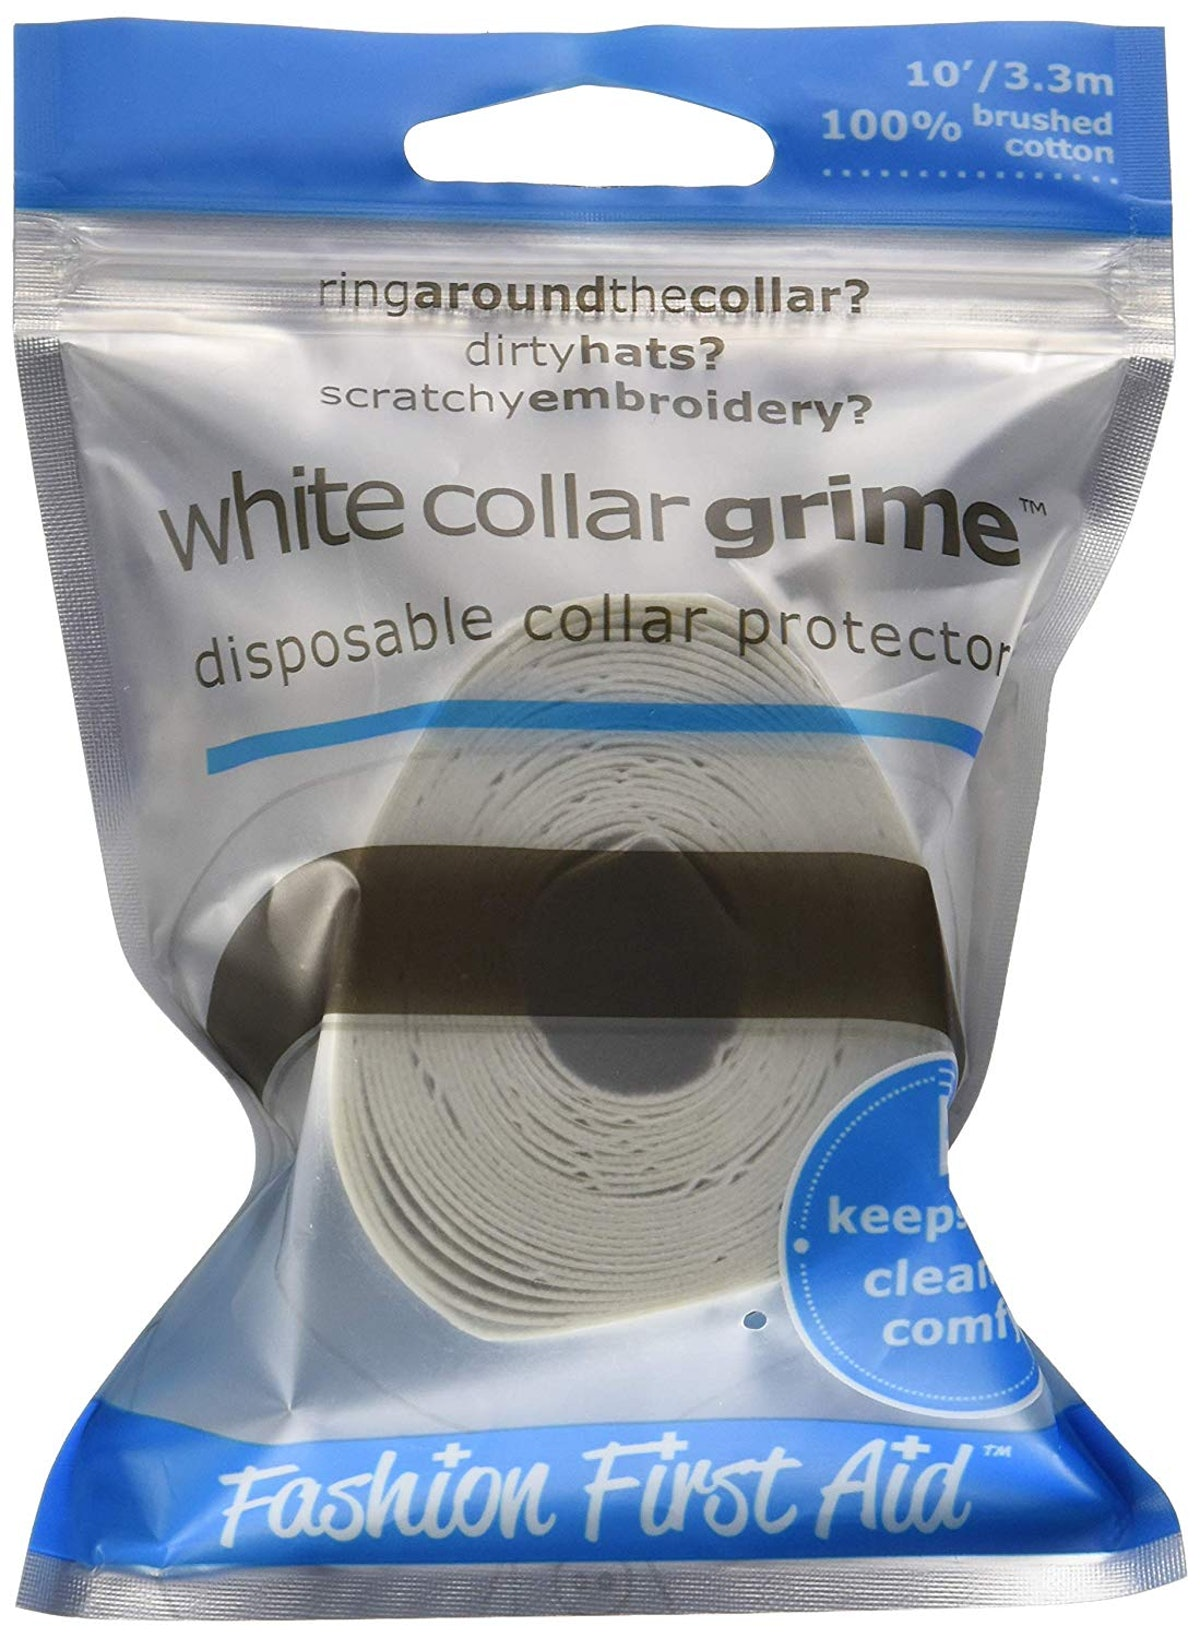 Fashion First Aid Disposable Collar Protector